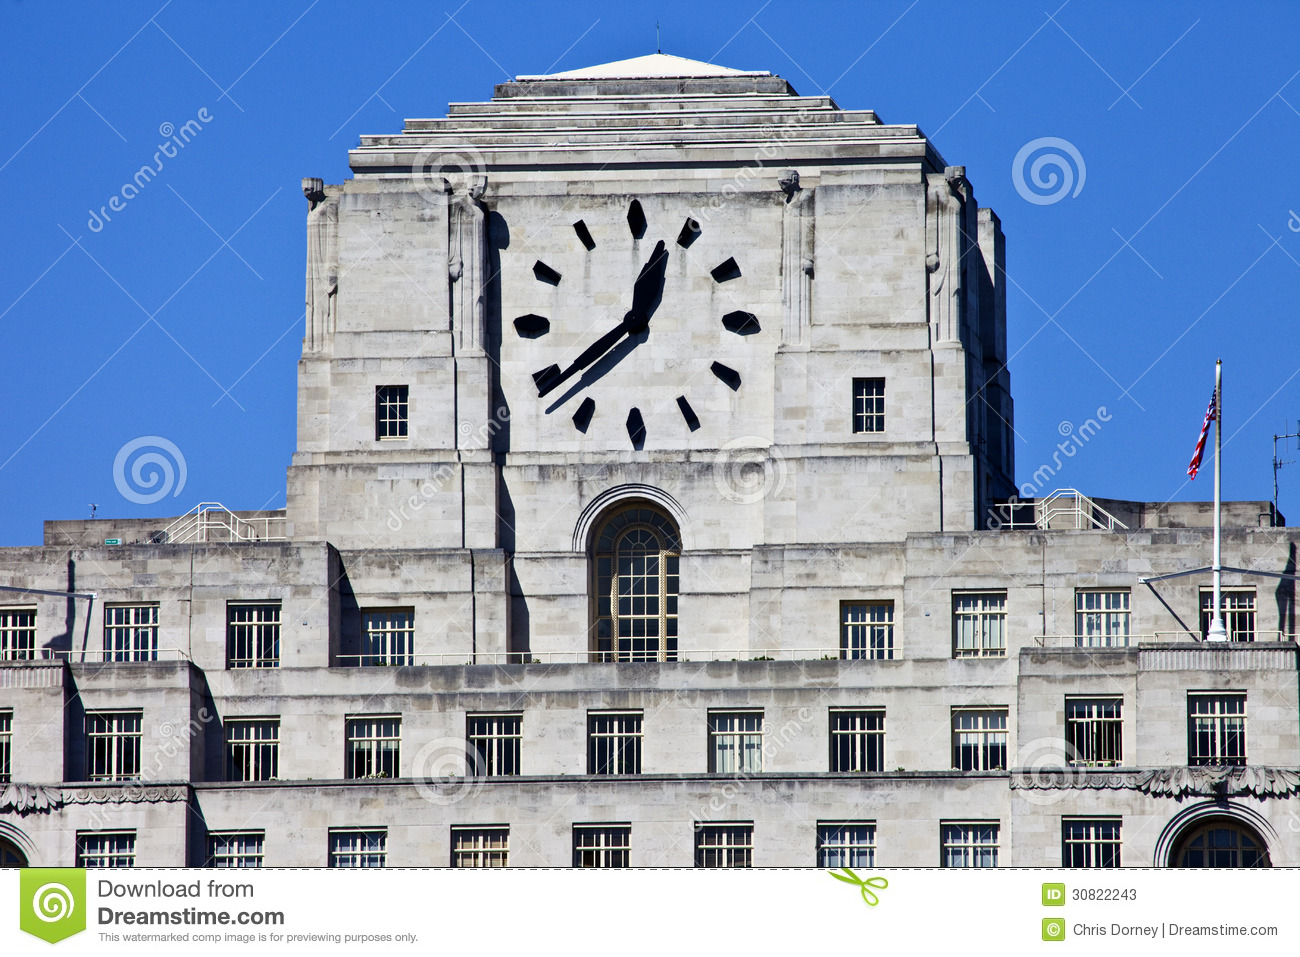 shell mex house in london stock image image of historical 30822243